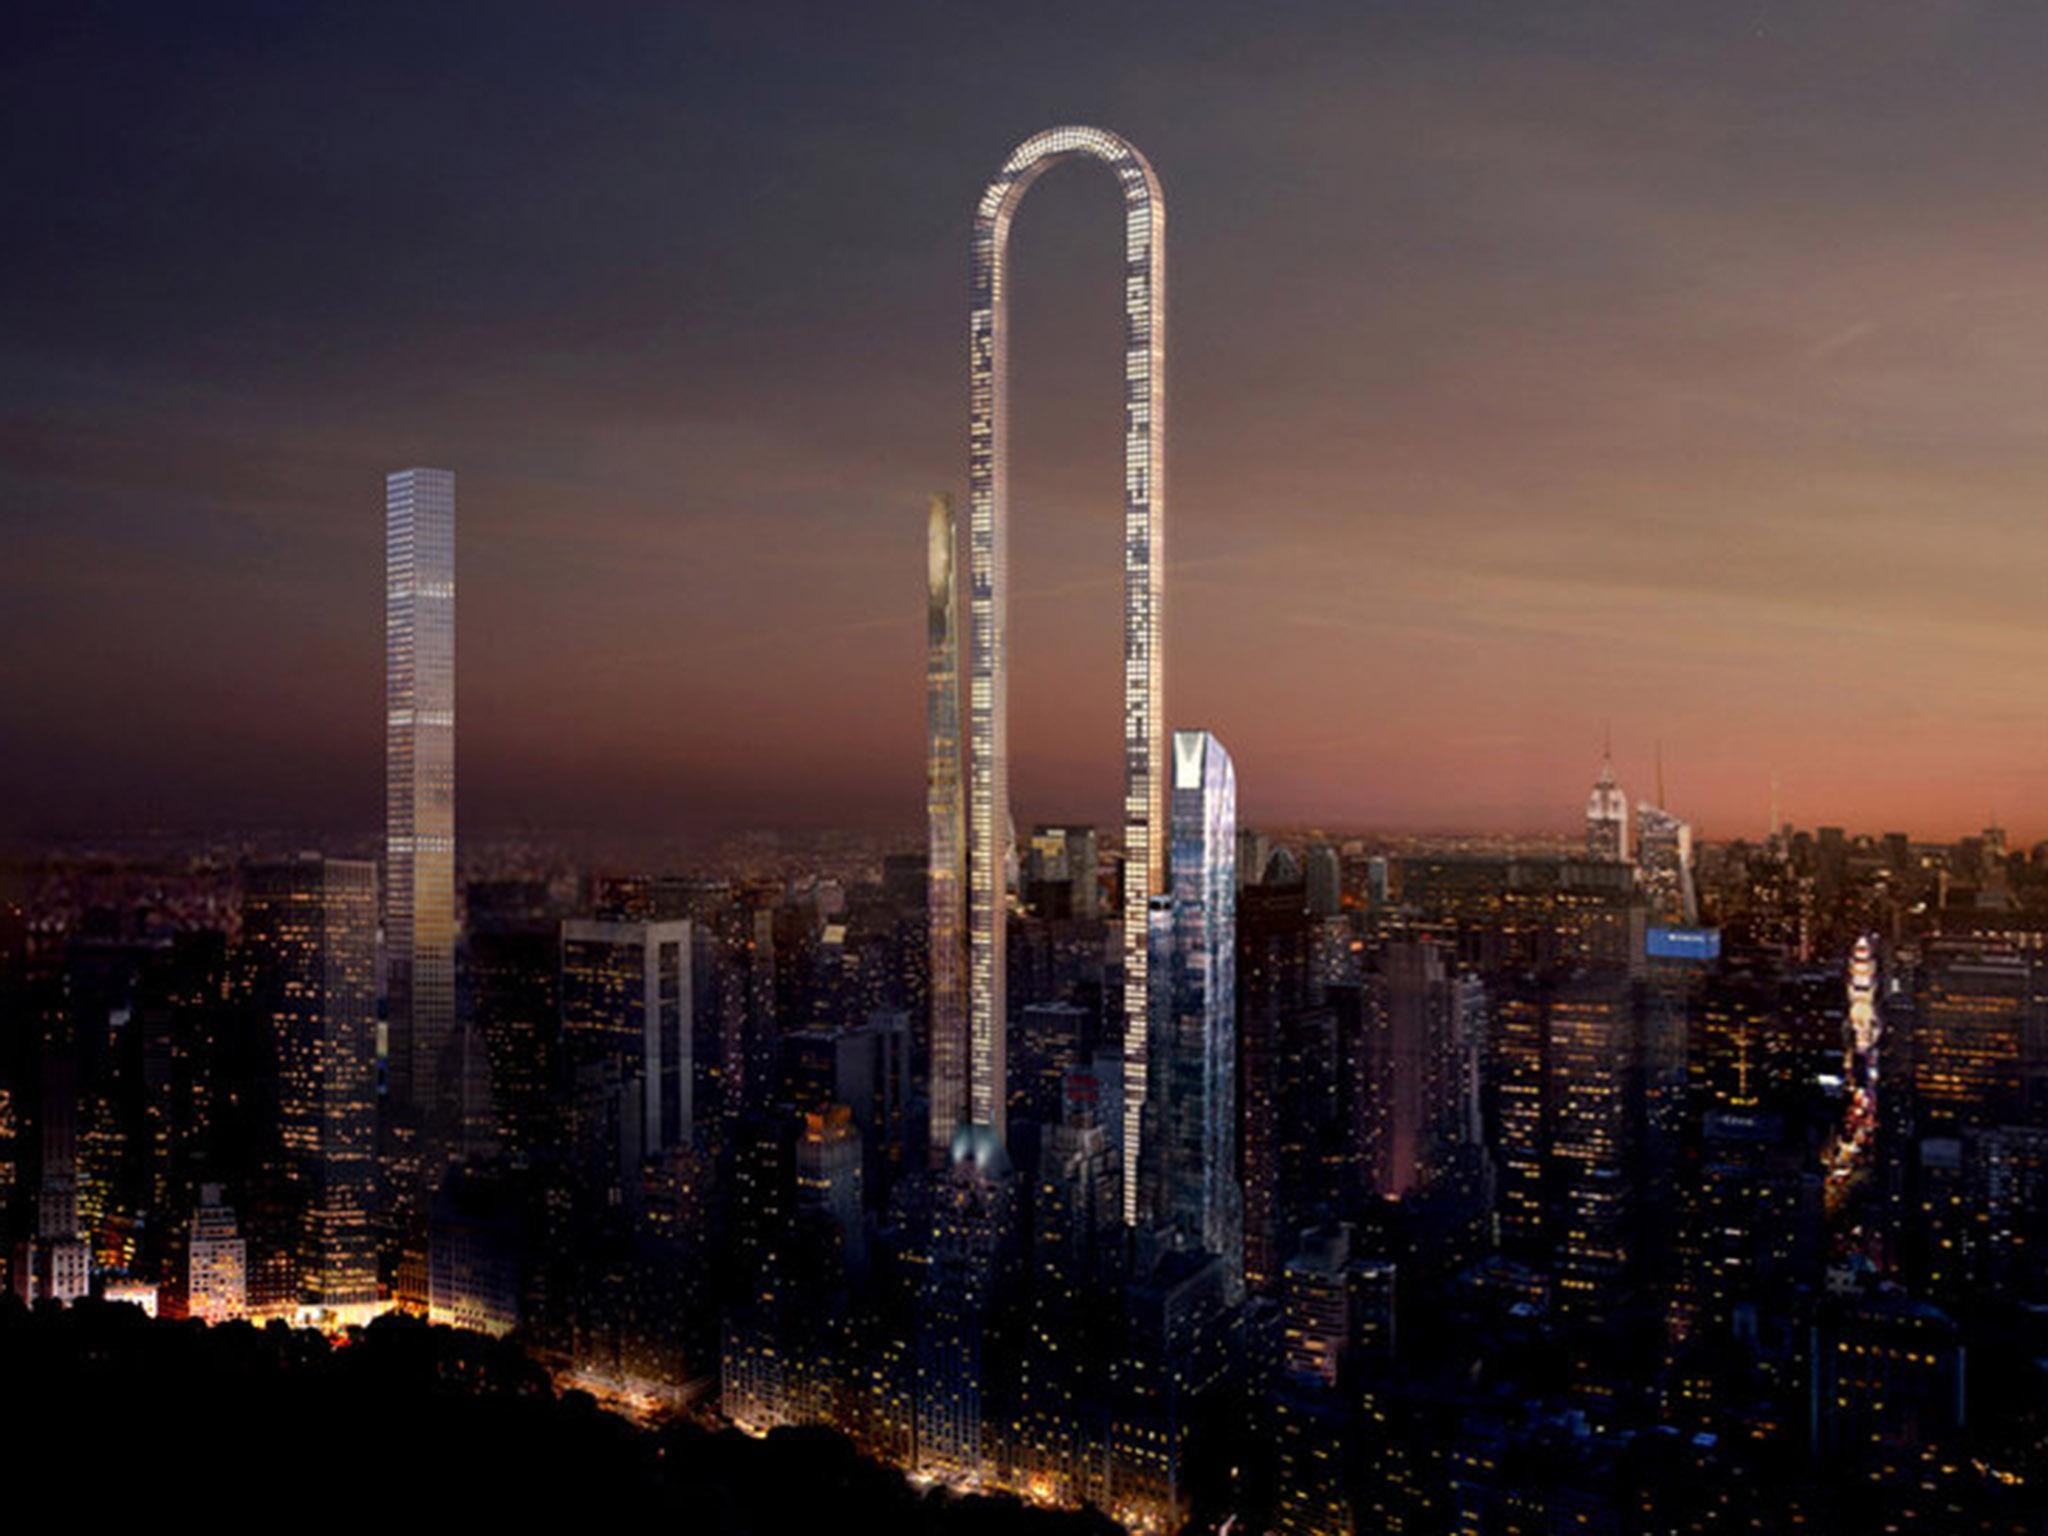 the big bend: giant u-shaped skyscraper planned for new york | the